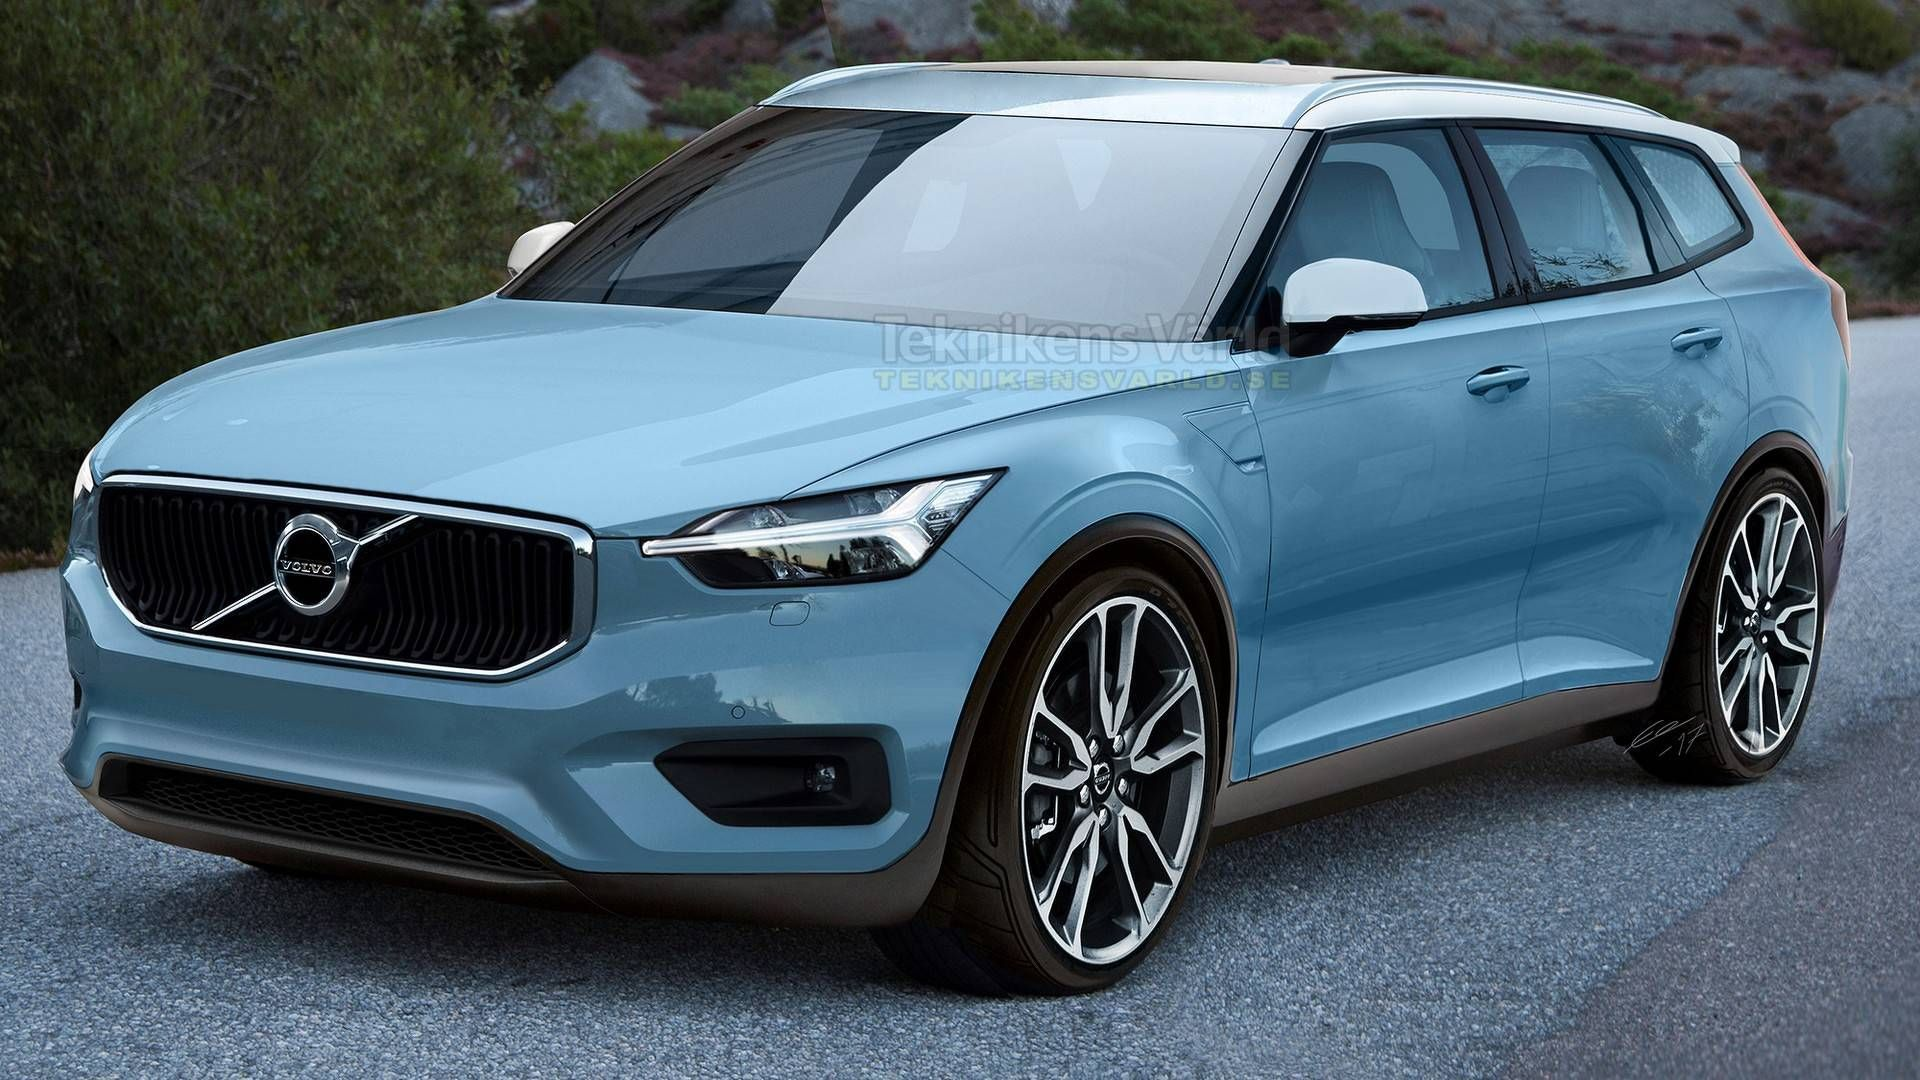 Explore Volvo Cx40 2020 Performance And Technology Features We Reviews The Volvo Cx40 2020 Release Where Consumers Can Find Detai Volvo V40 Volvo Volvo Wagon